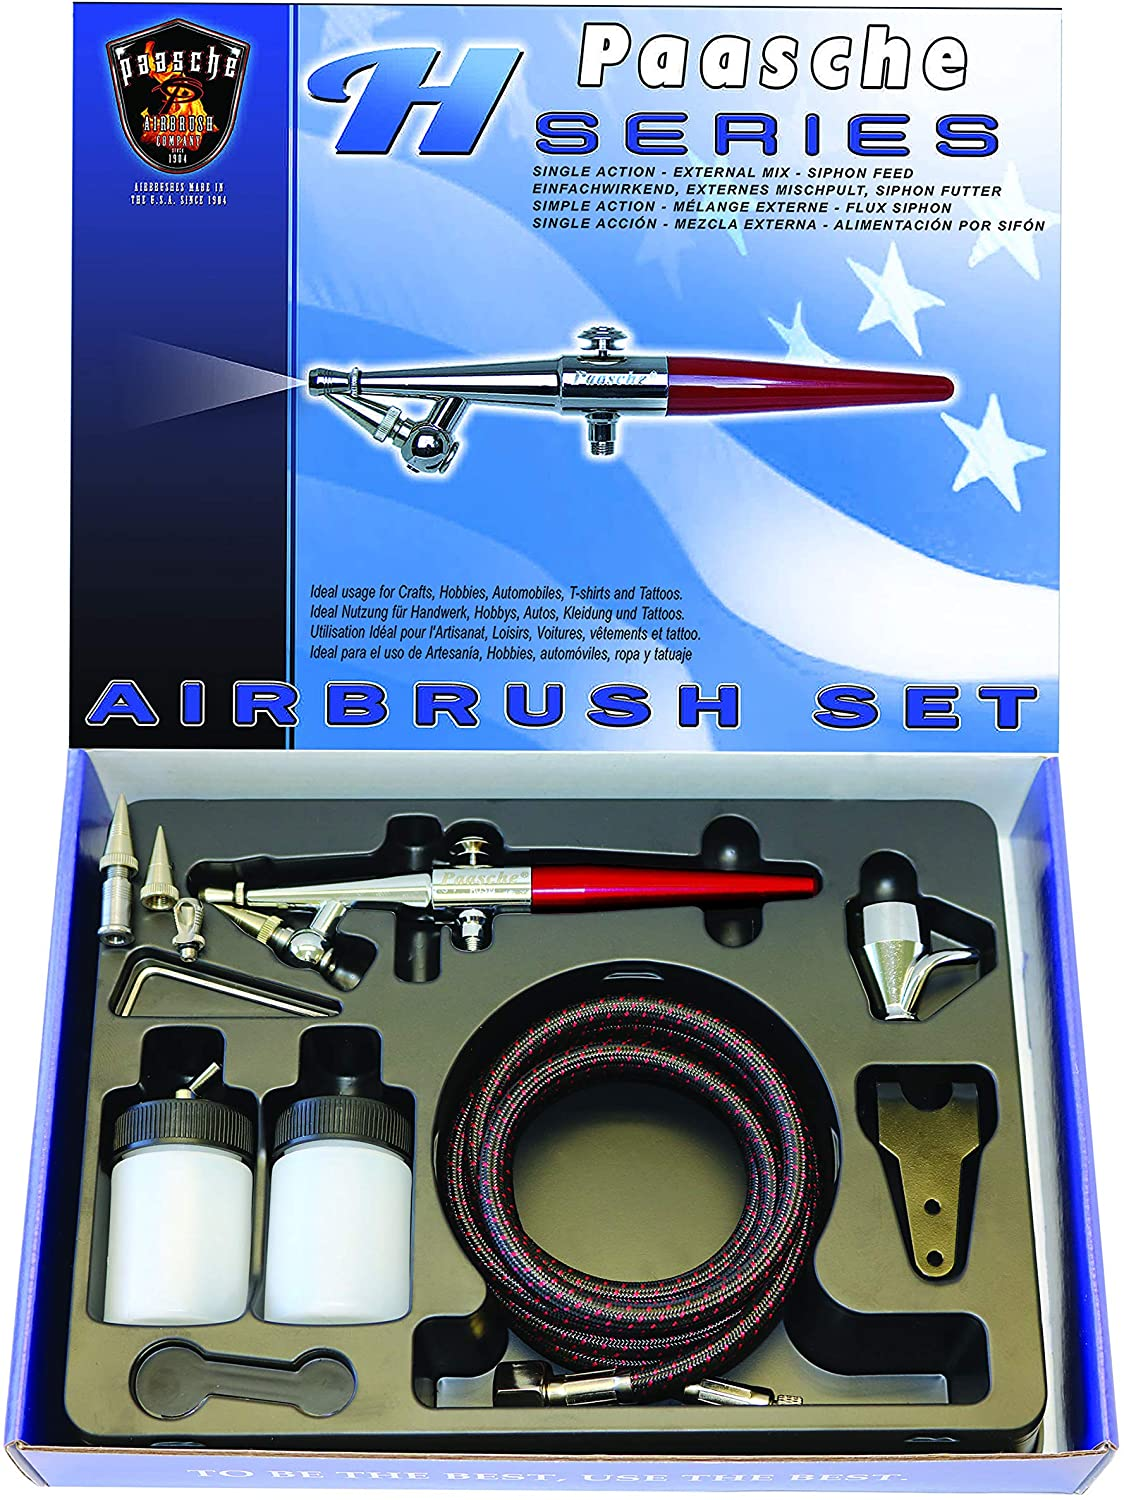 Paasche Airbrush Single Action Airbrush Set